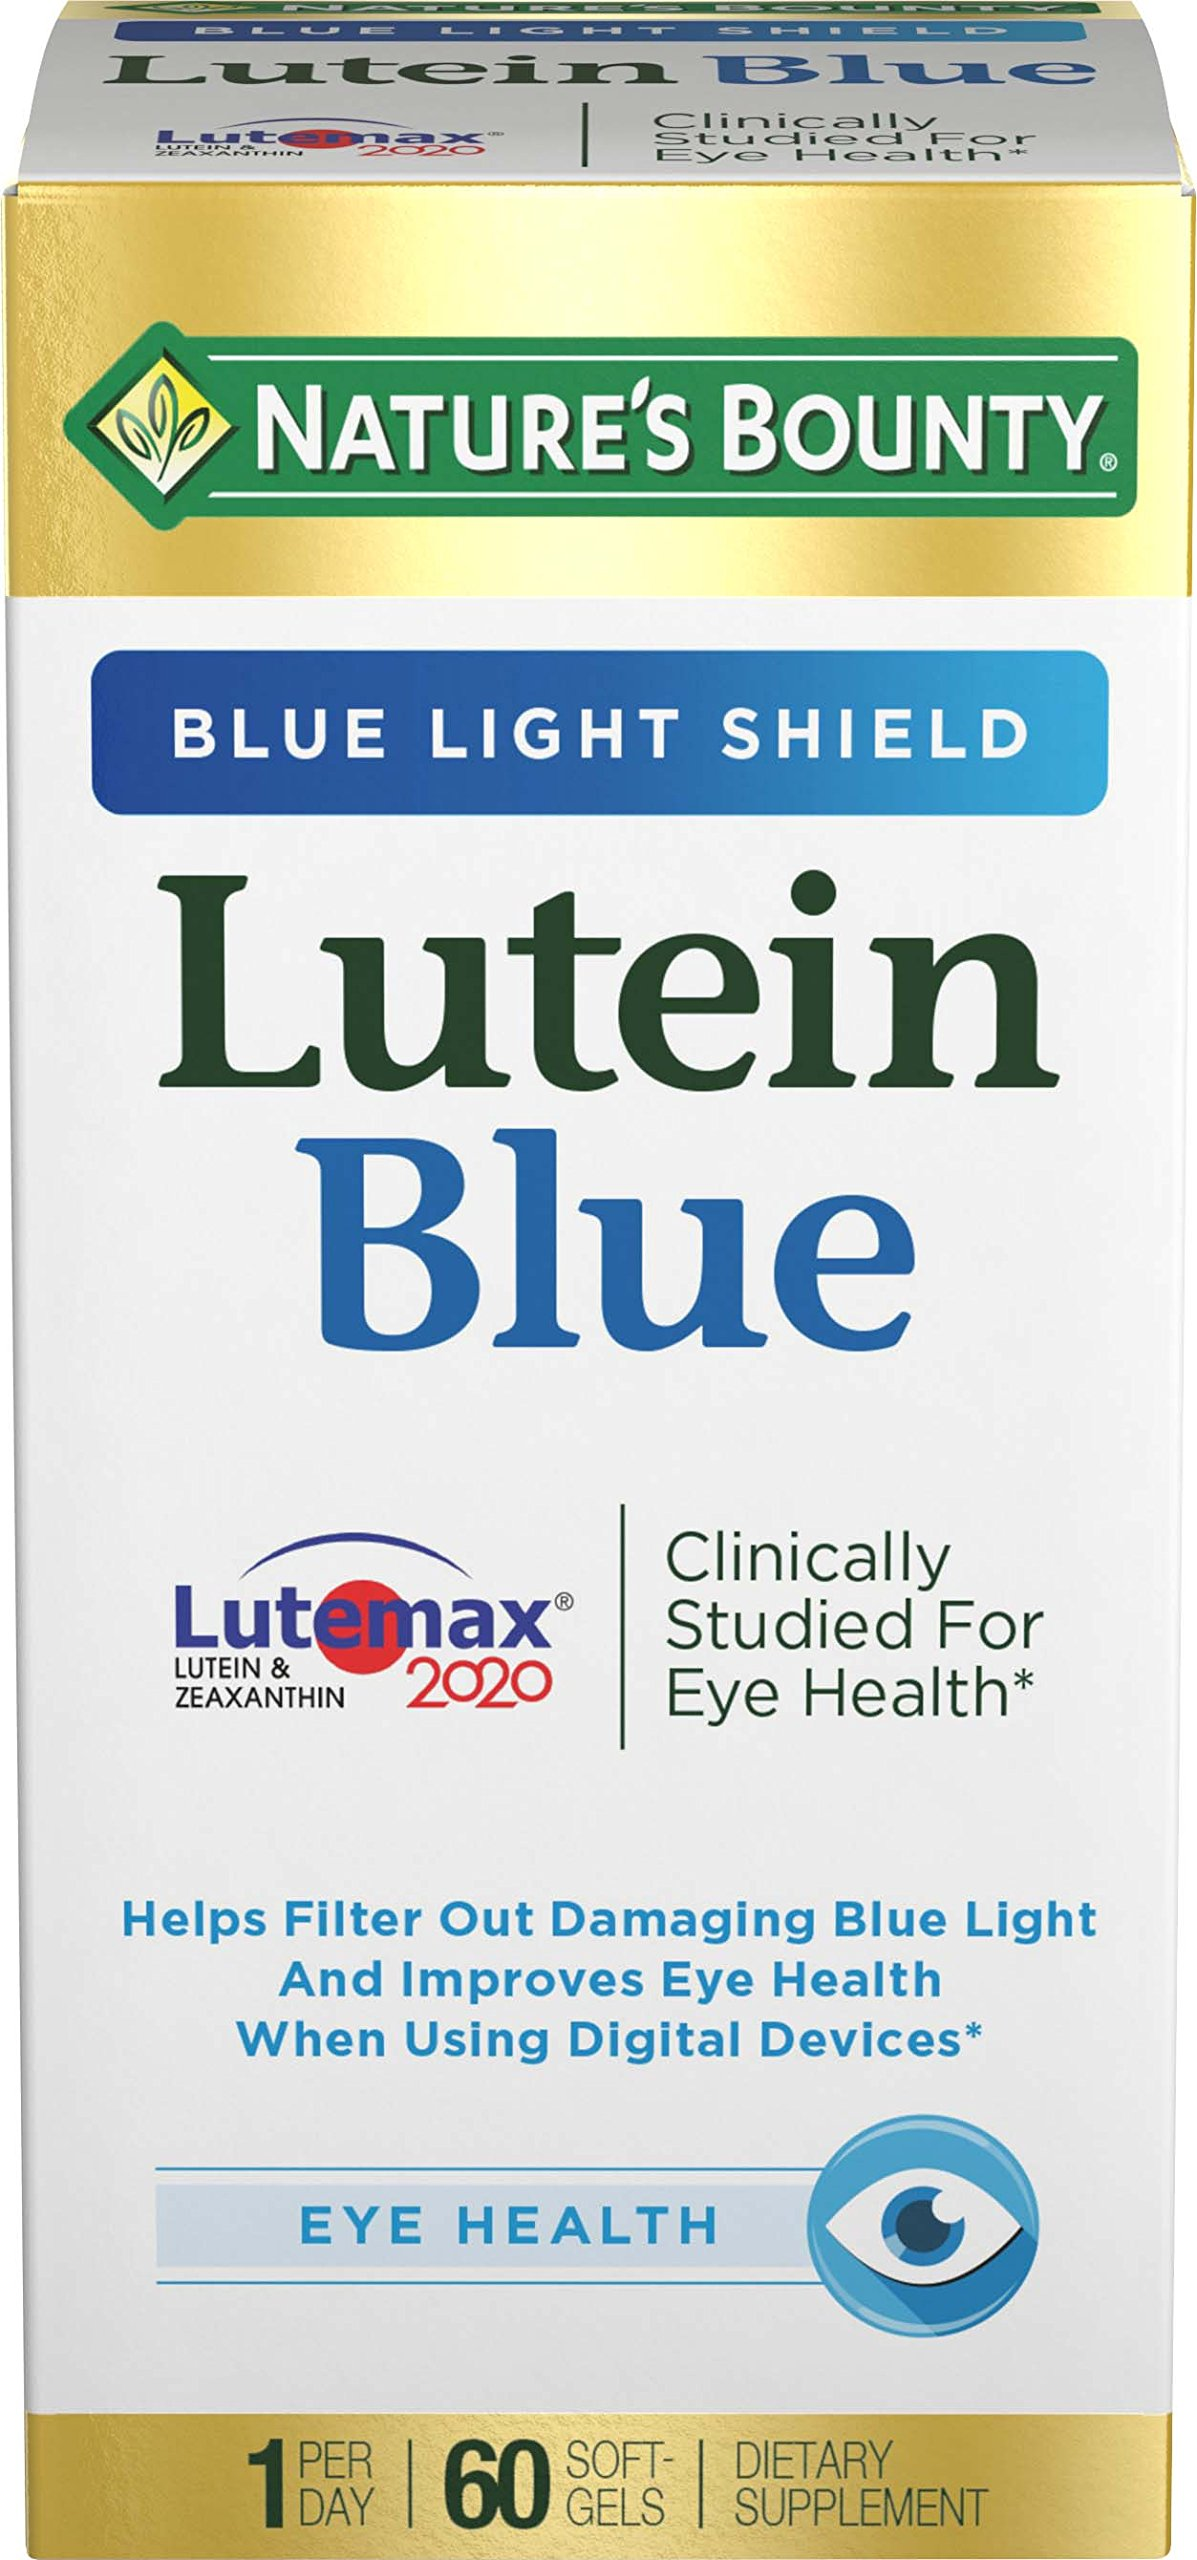 Nature's Bounty Lutein Blue Pills, Eye Health Supplements and Vitamins with Vitamin A and Zinc, Supports Vision Health, 60 Softgels by Nature's Bounty